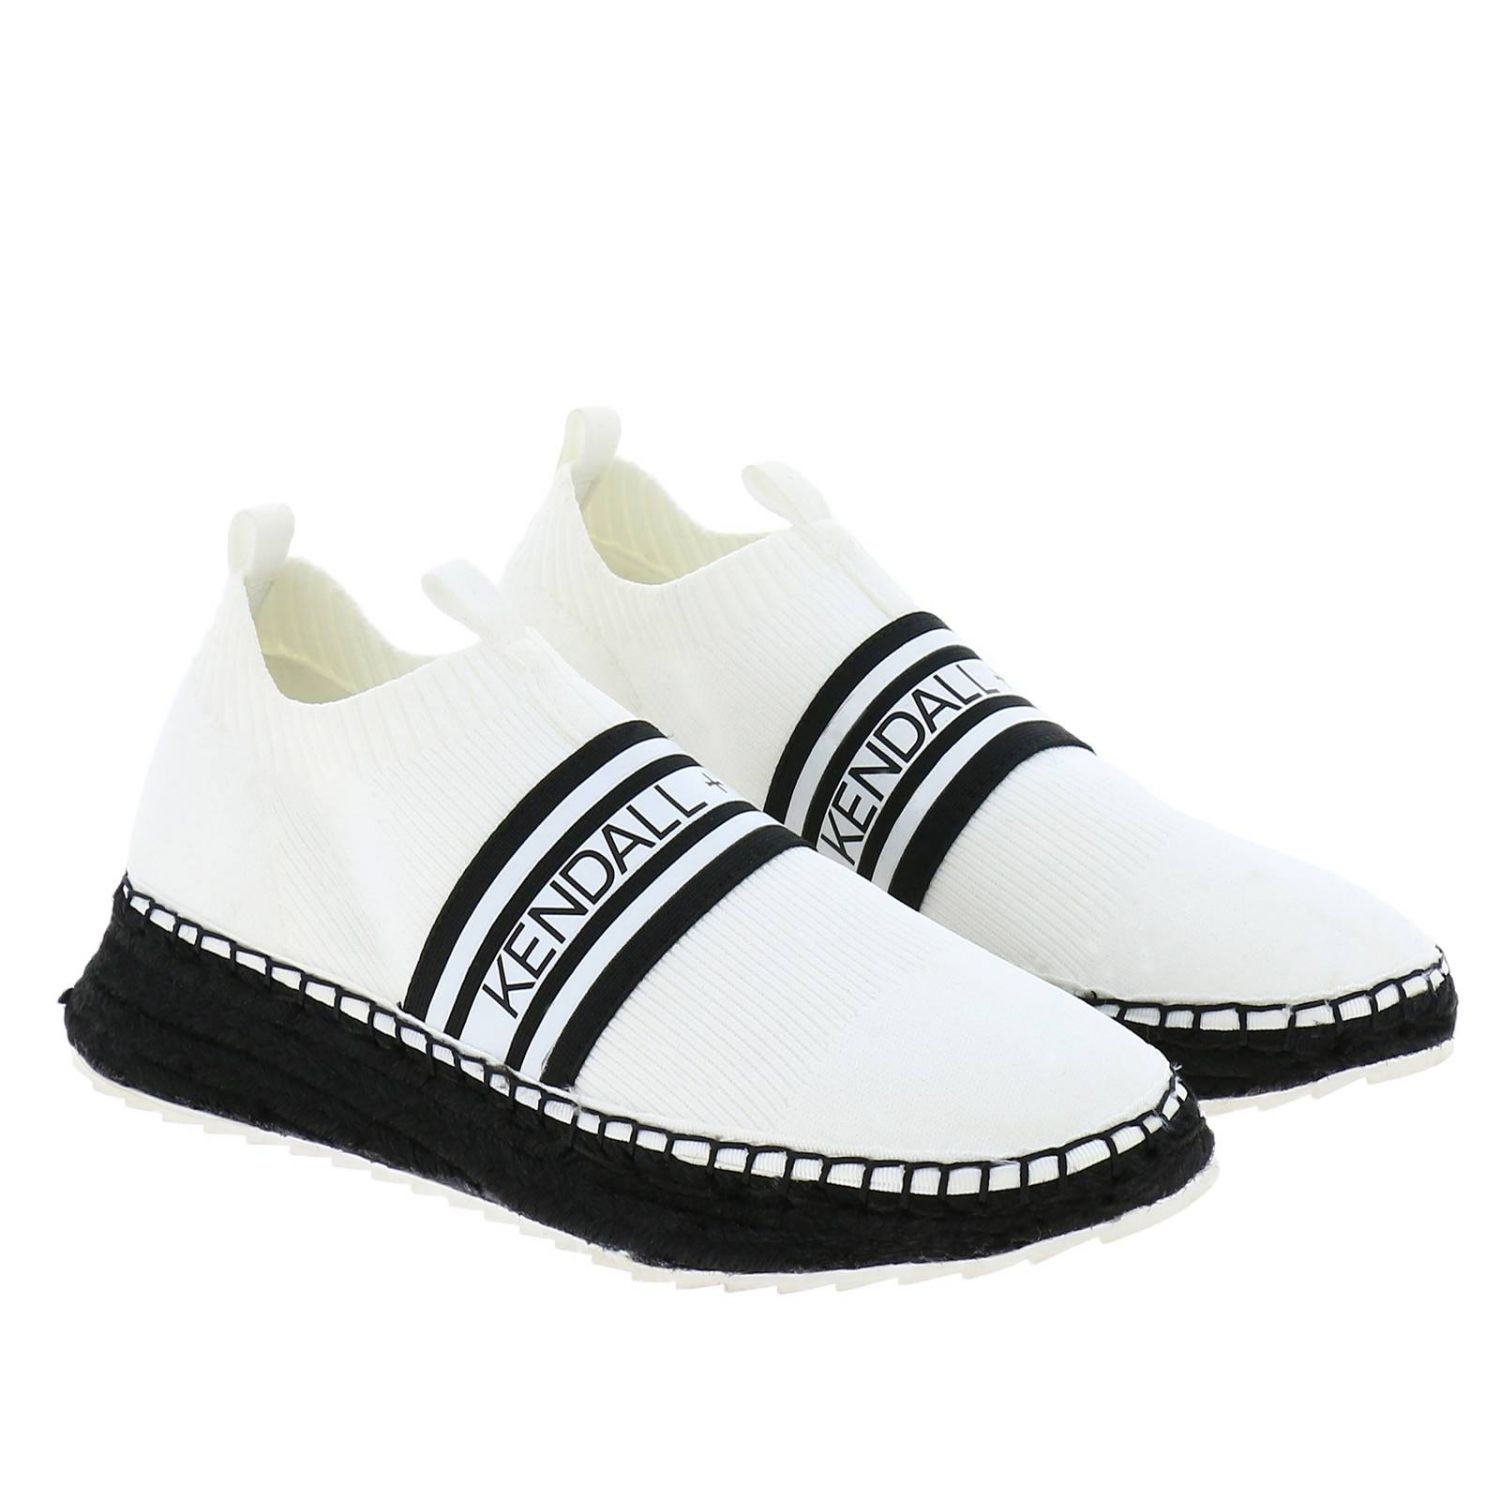 Sneakers KK Jake-B slip on a calza in tessuto stretch con maxi logo Kendall+Kylie bianco 2